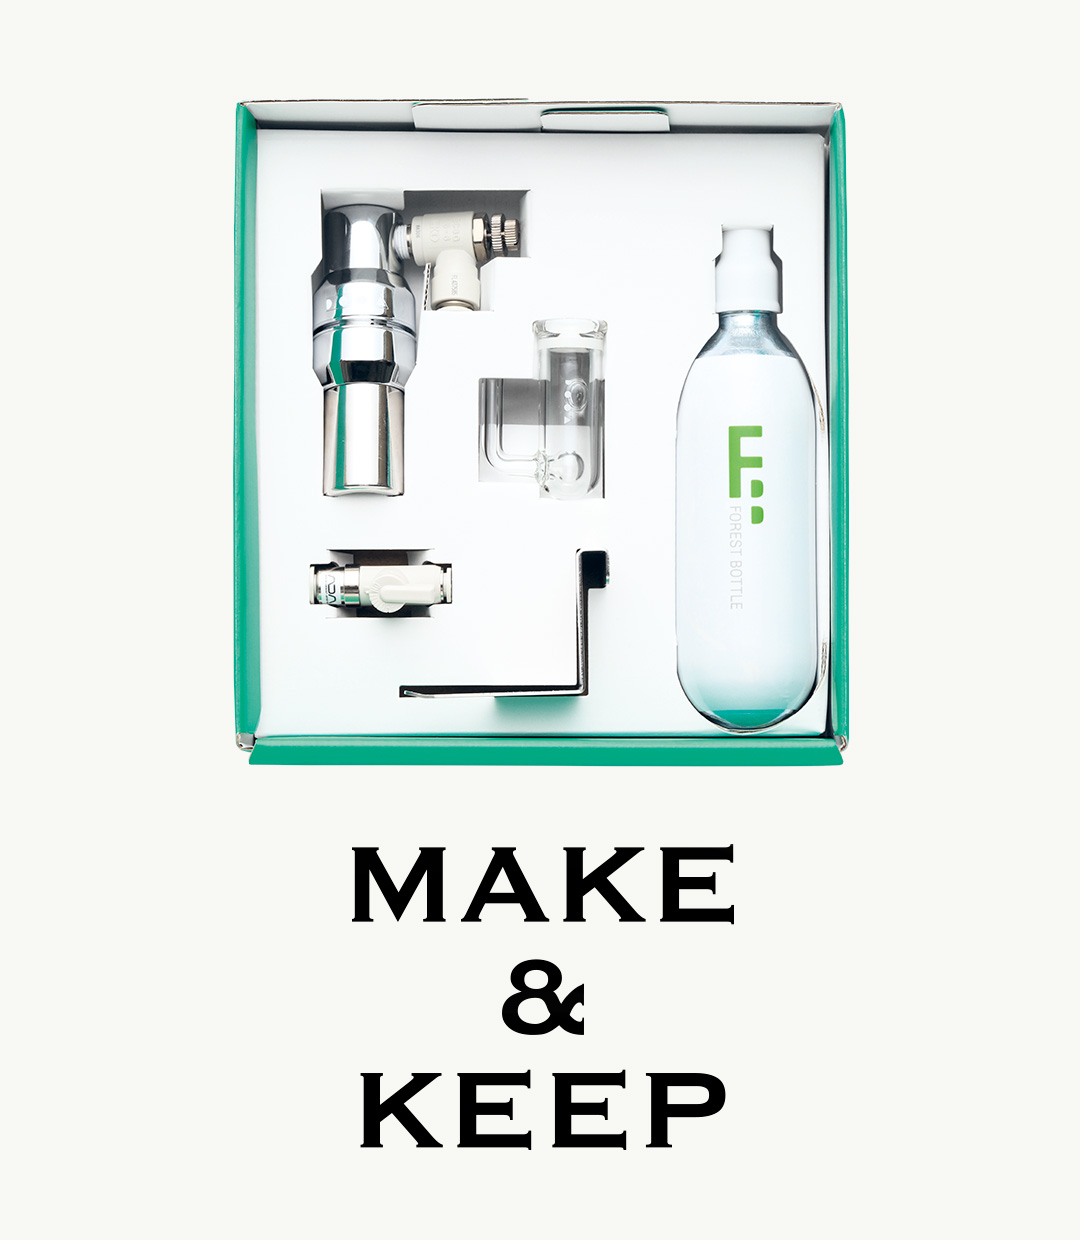 MAKE & KEEP 'CO₂ SYSTEM KIT'